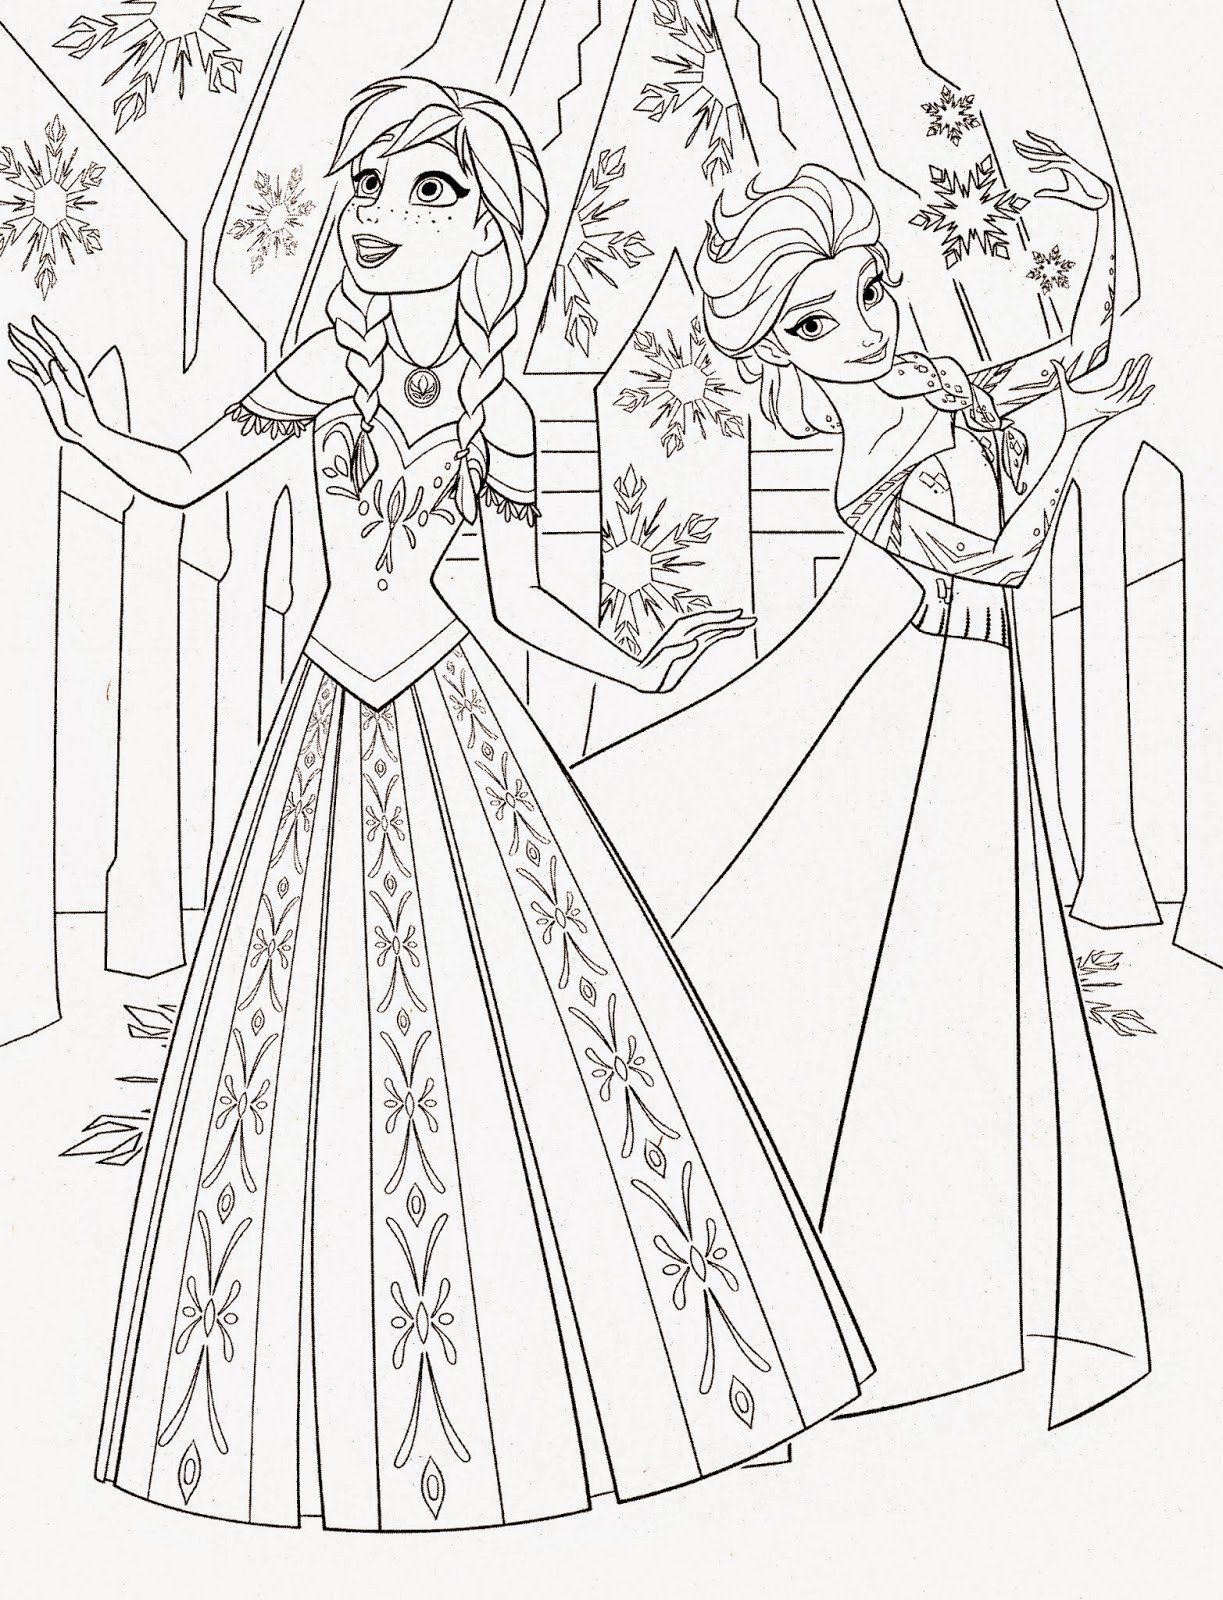 All Disney Princess Coloring Pages Coloring Pages Unique Disney All Princess Coloring In 2020 Elsa Coloring Pages Disney Princess Coloring Pages Frozen Coloring Pages [ 1600 x 1223 Pixel ]